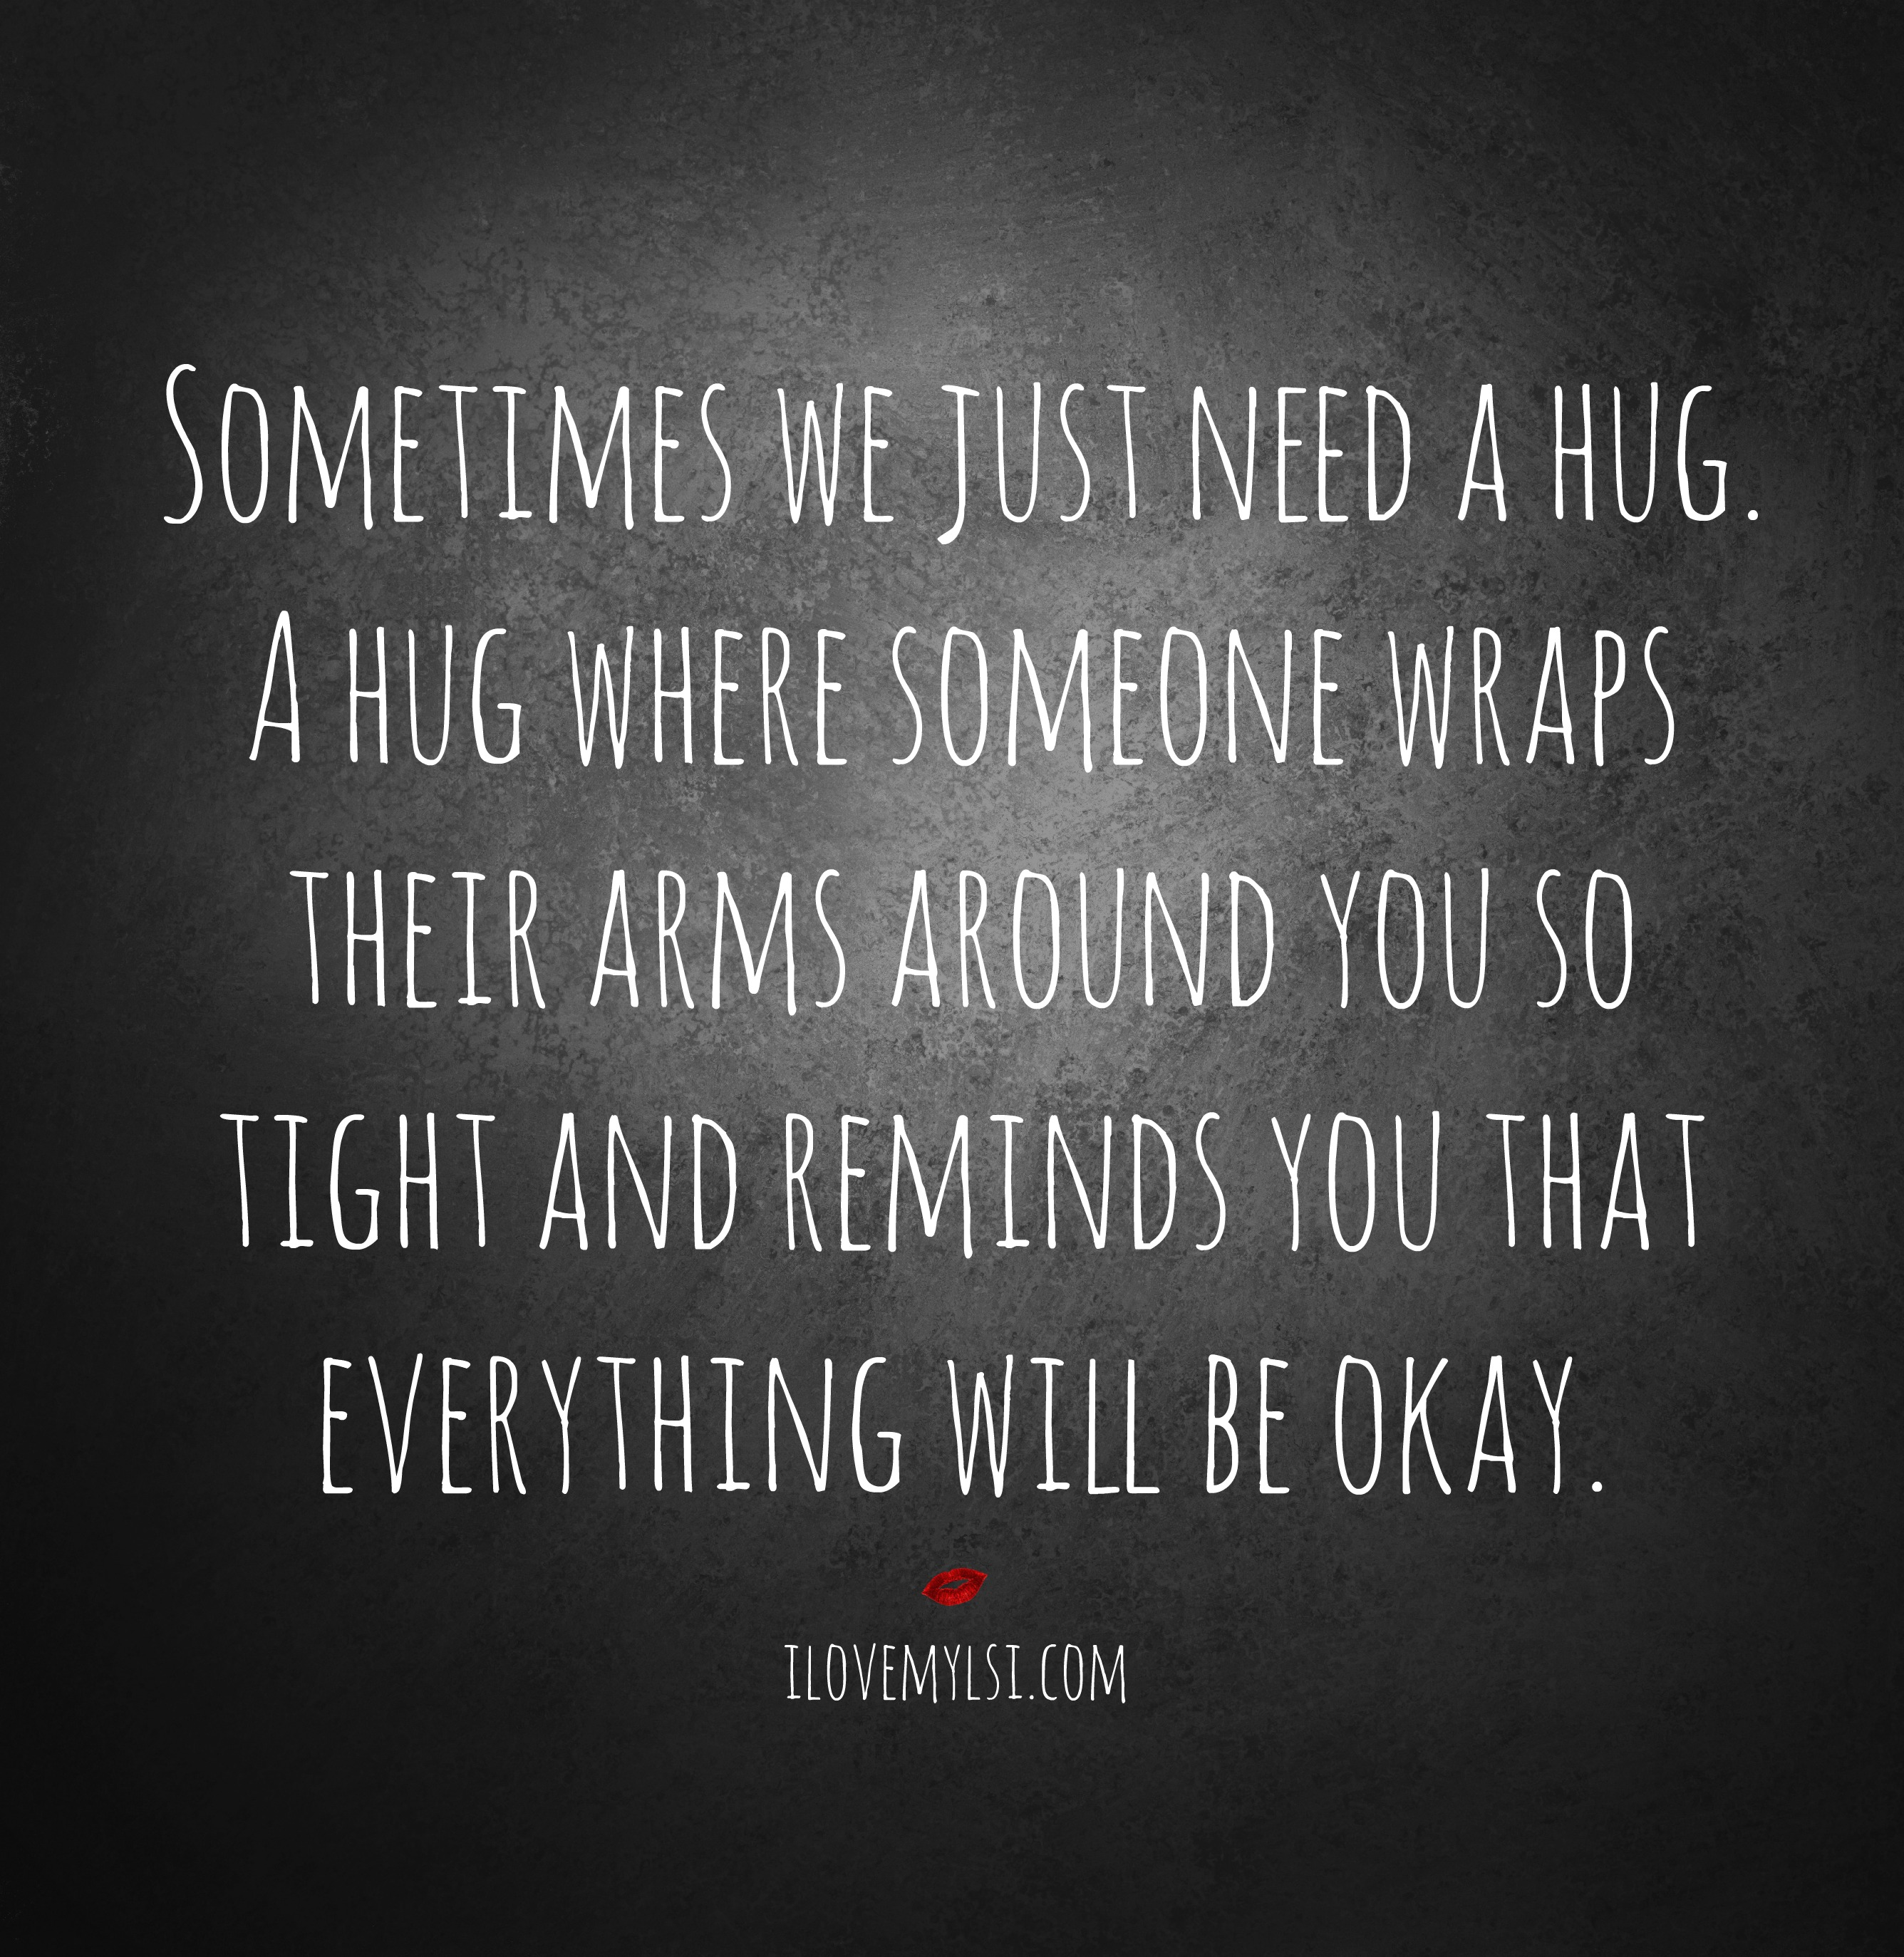 I Want To Cuddle With You Quotes: Sometimes We Just Need A Hug